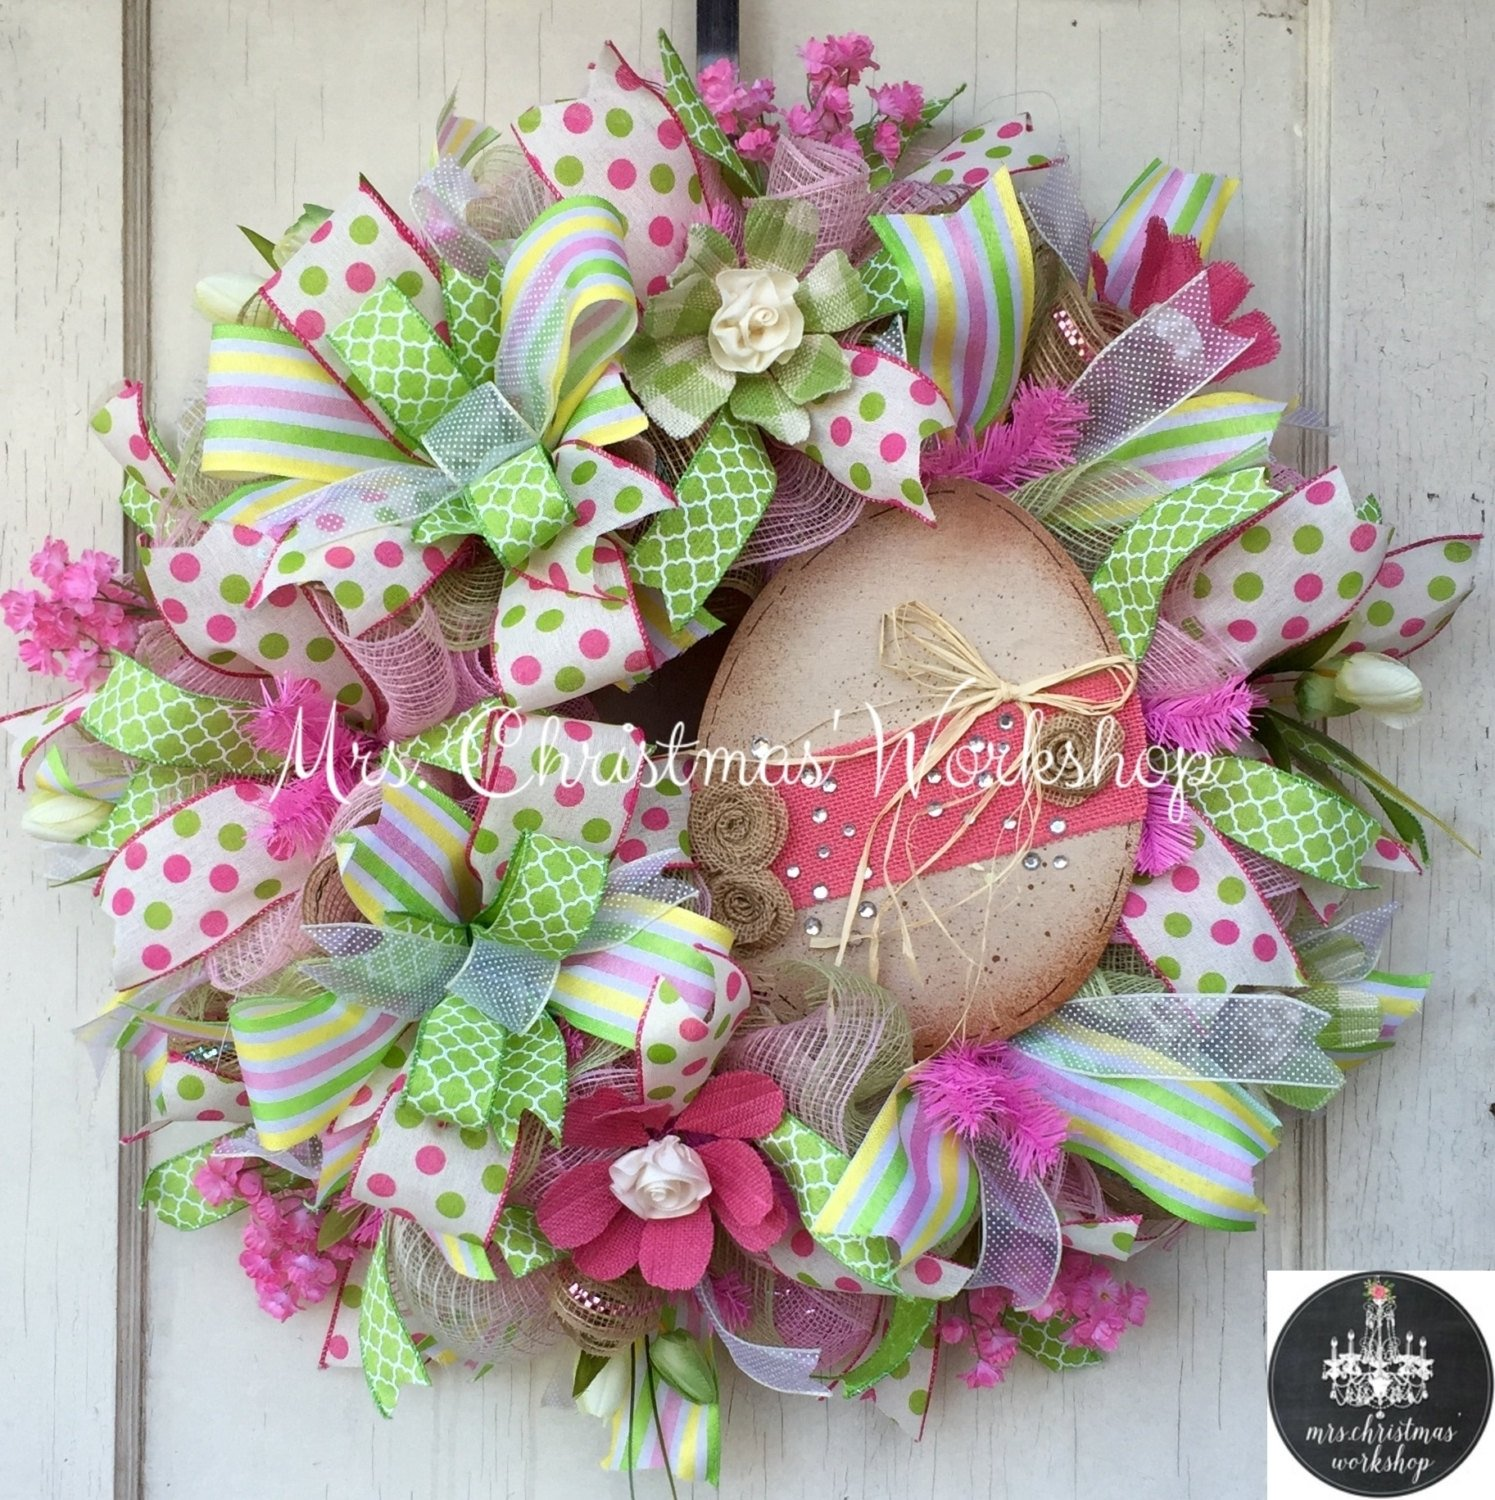 10 Cute Easter Deco Mesh Wreath Ideas cheerful handmade easter wreath designs to get your home in the